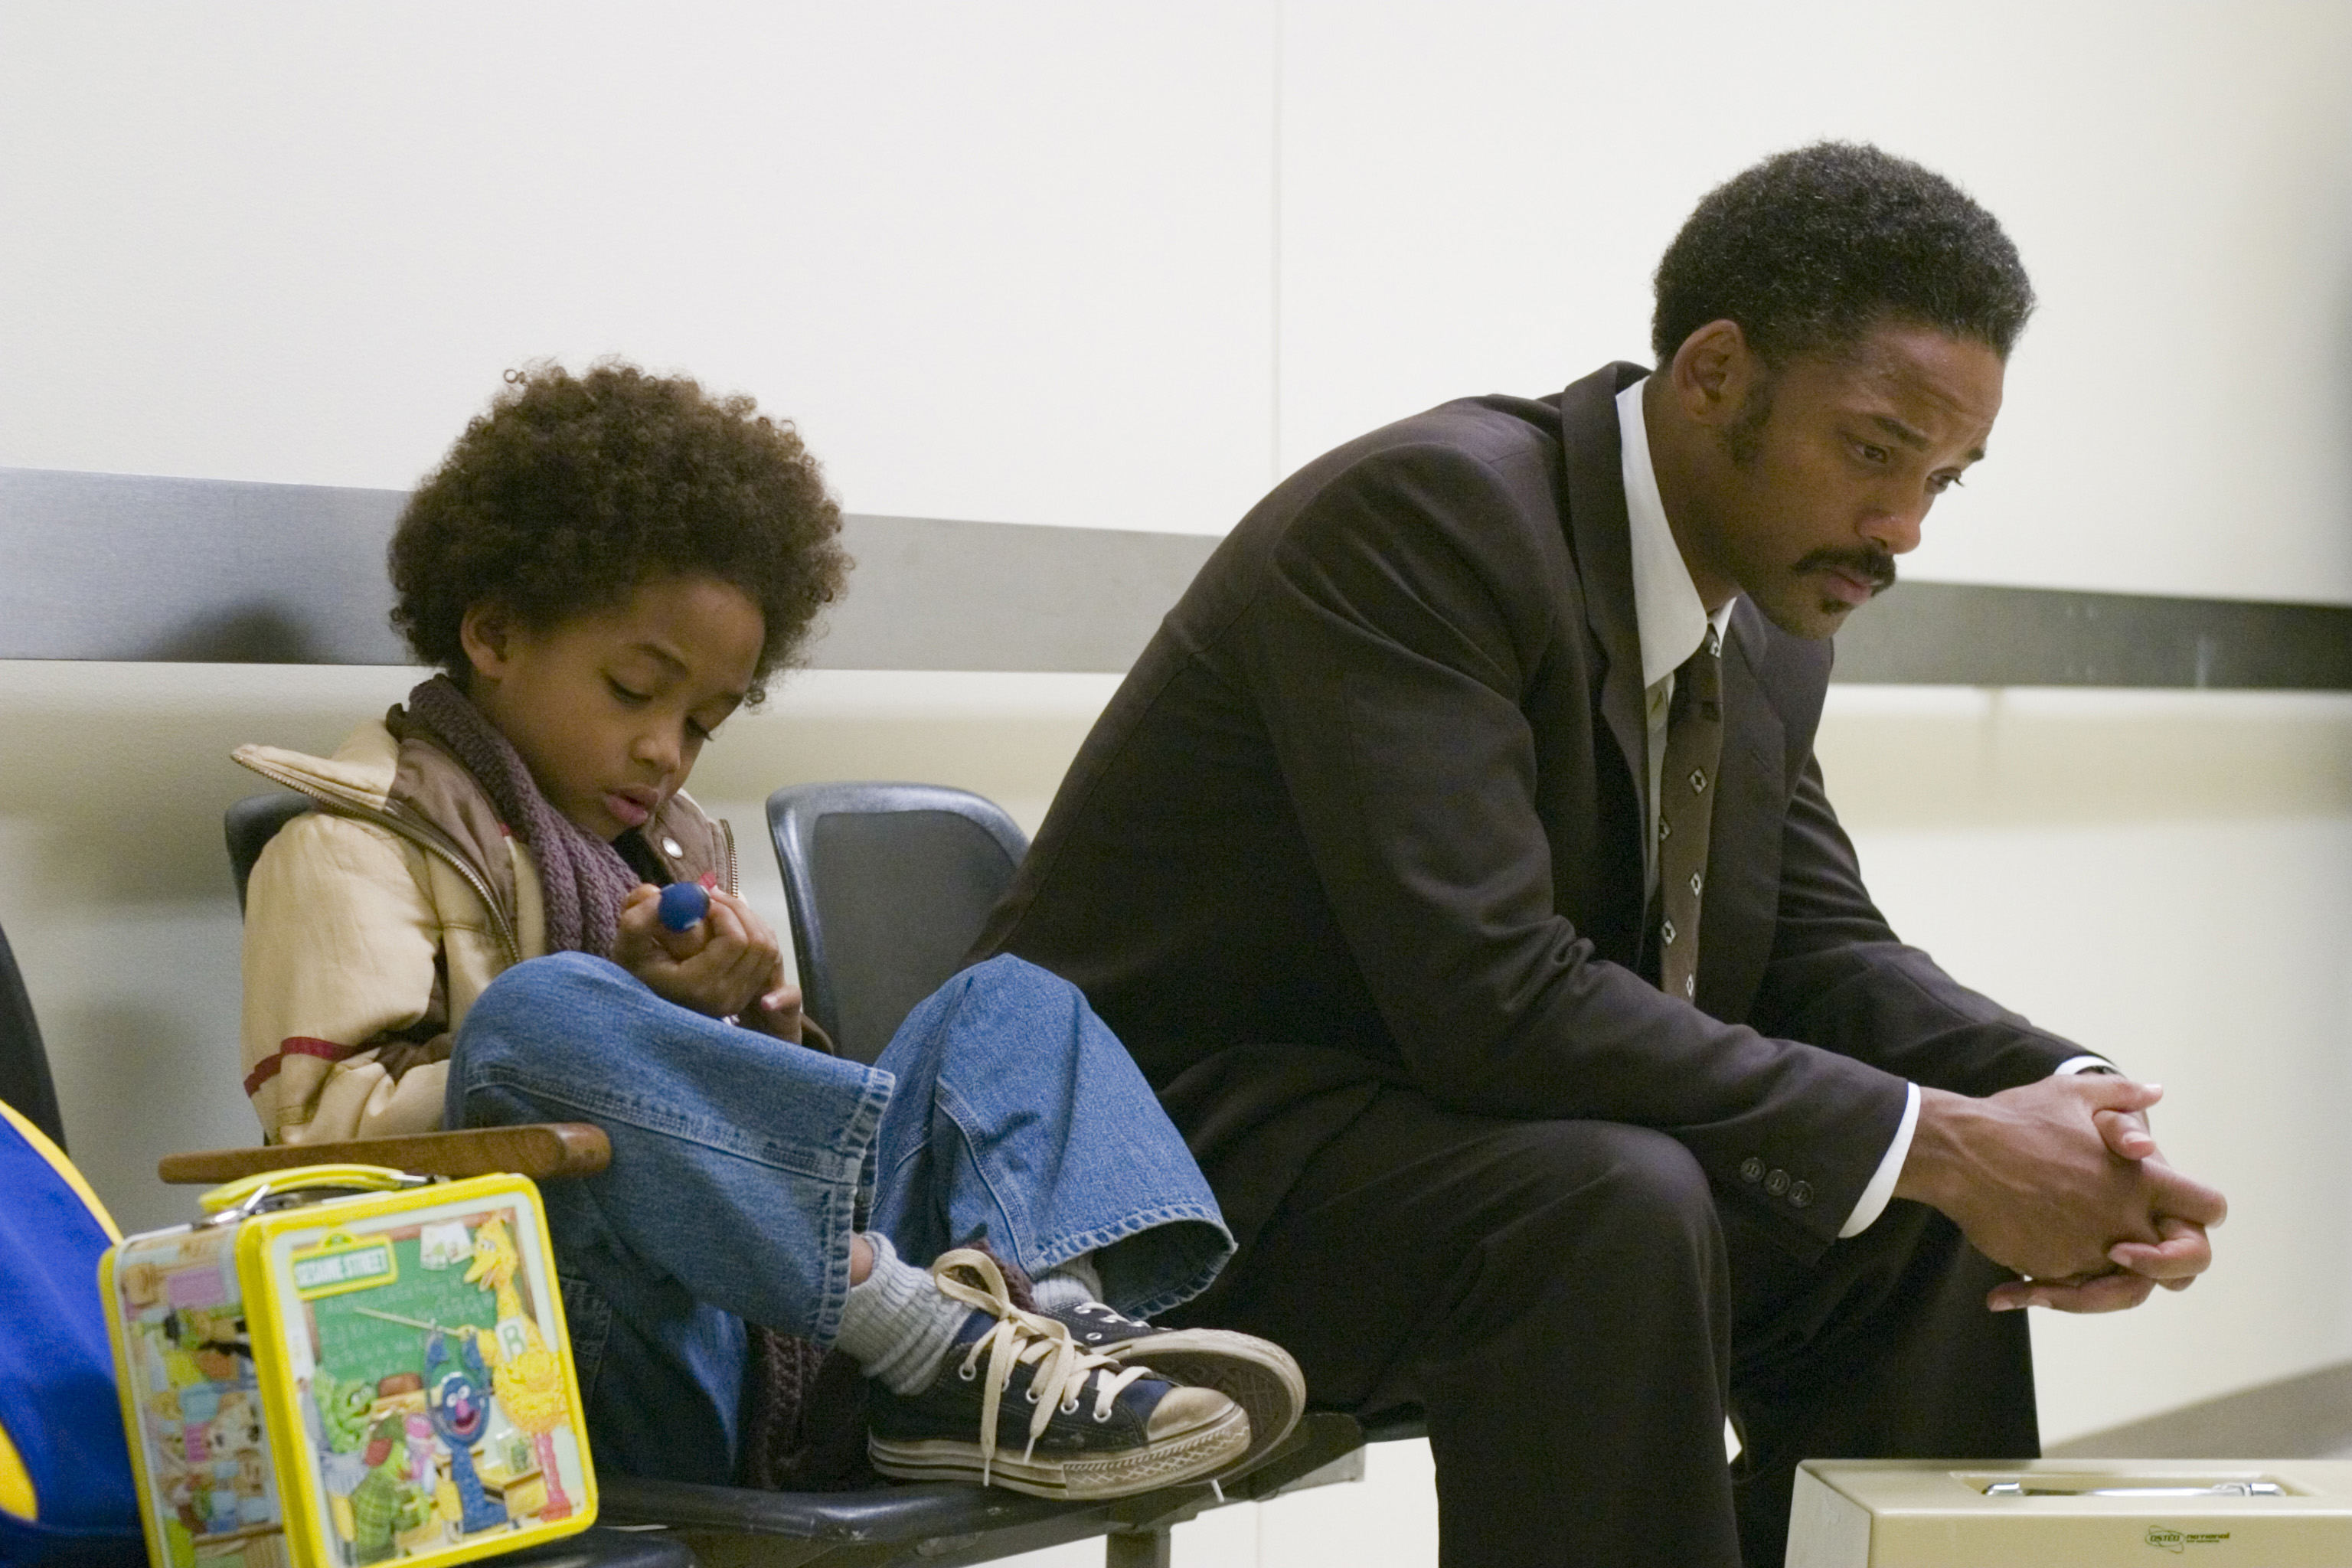 PK-13 [DF-01287] - Jaden Christopher Syre Smith (left) and Will Smith star in Columbia PicturesÕ drama The Pursuit of Happyness. Photo Credit: Zade Rosenthal